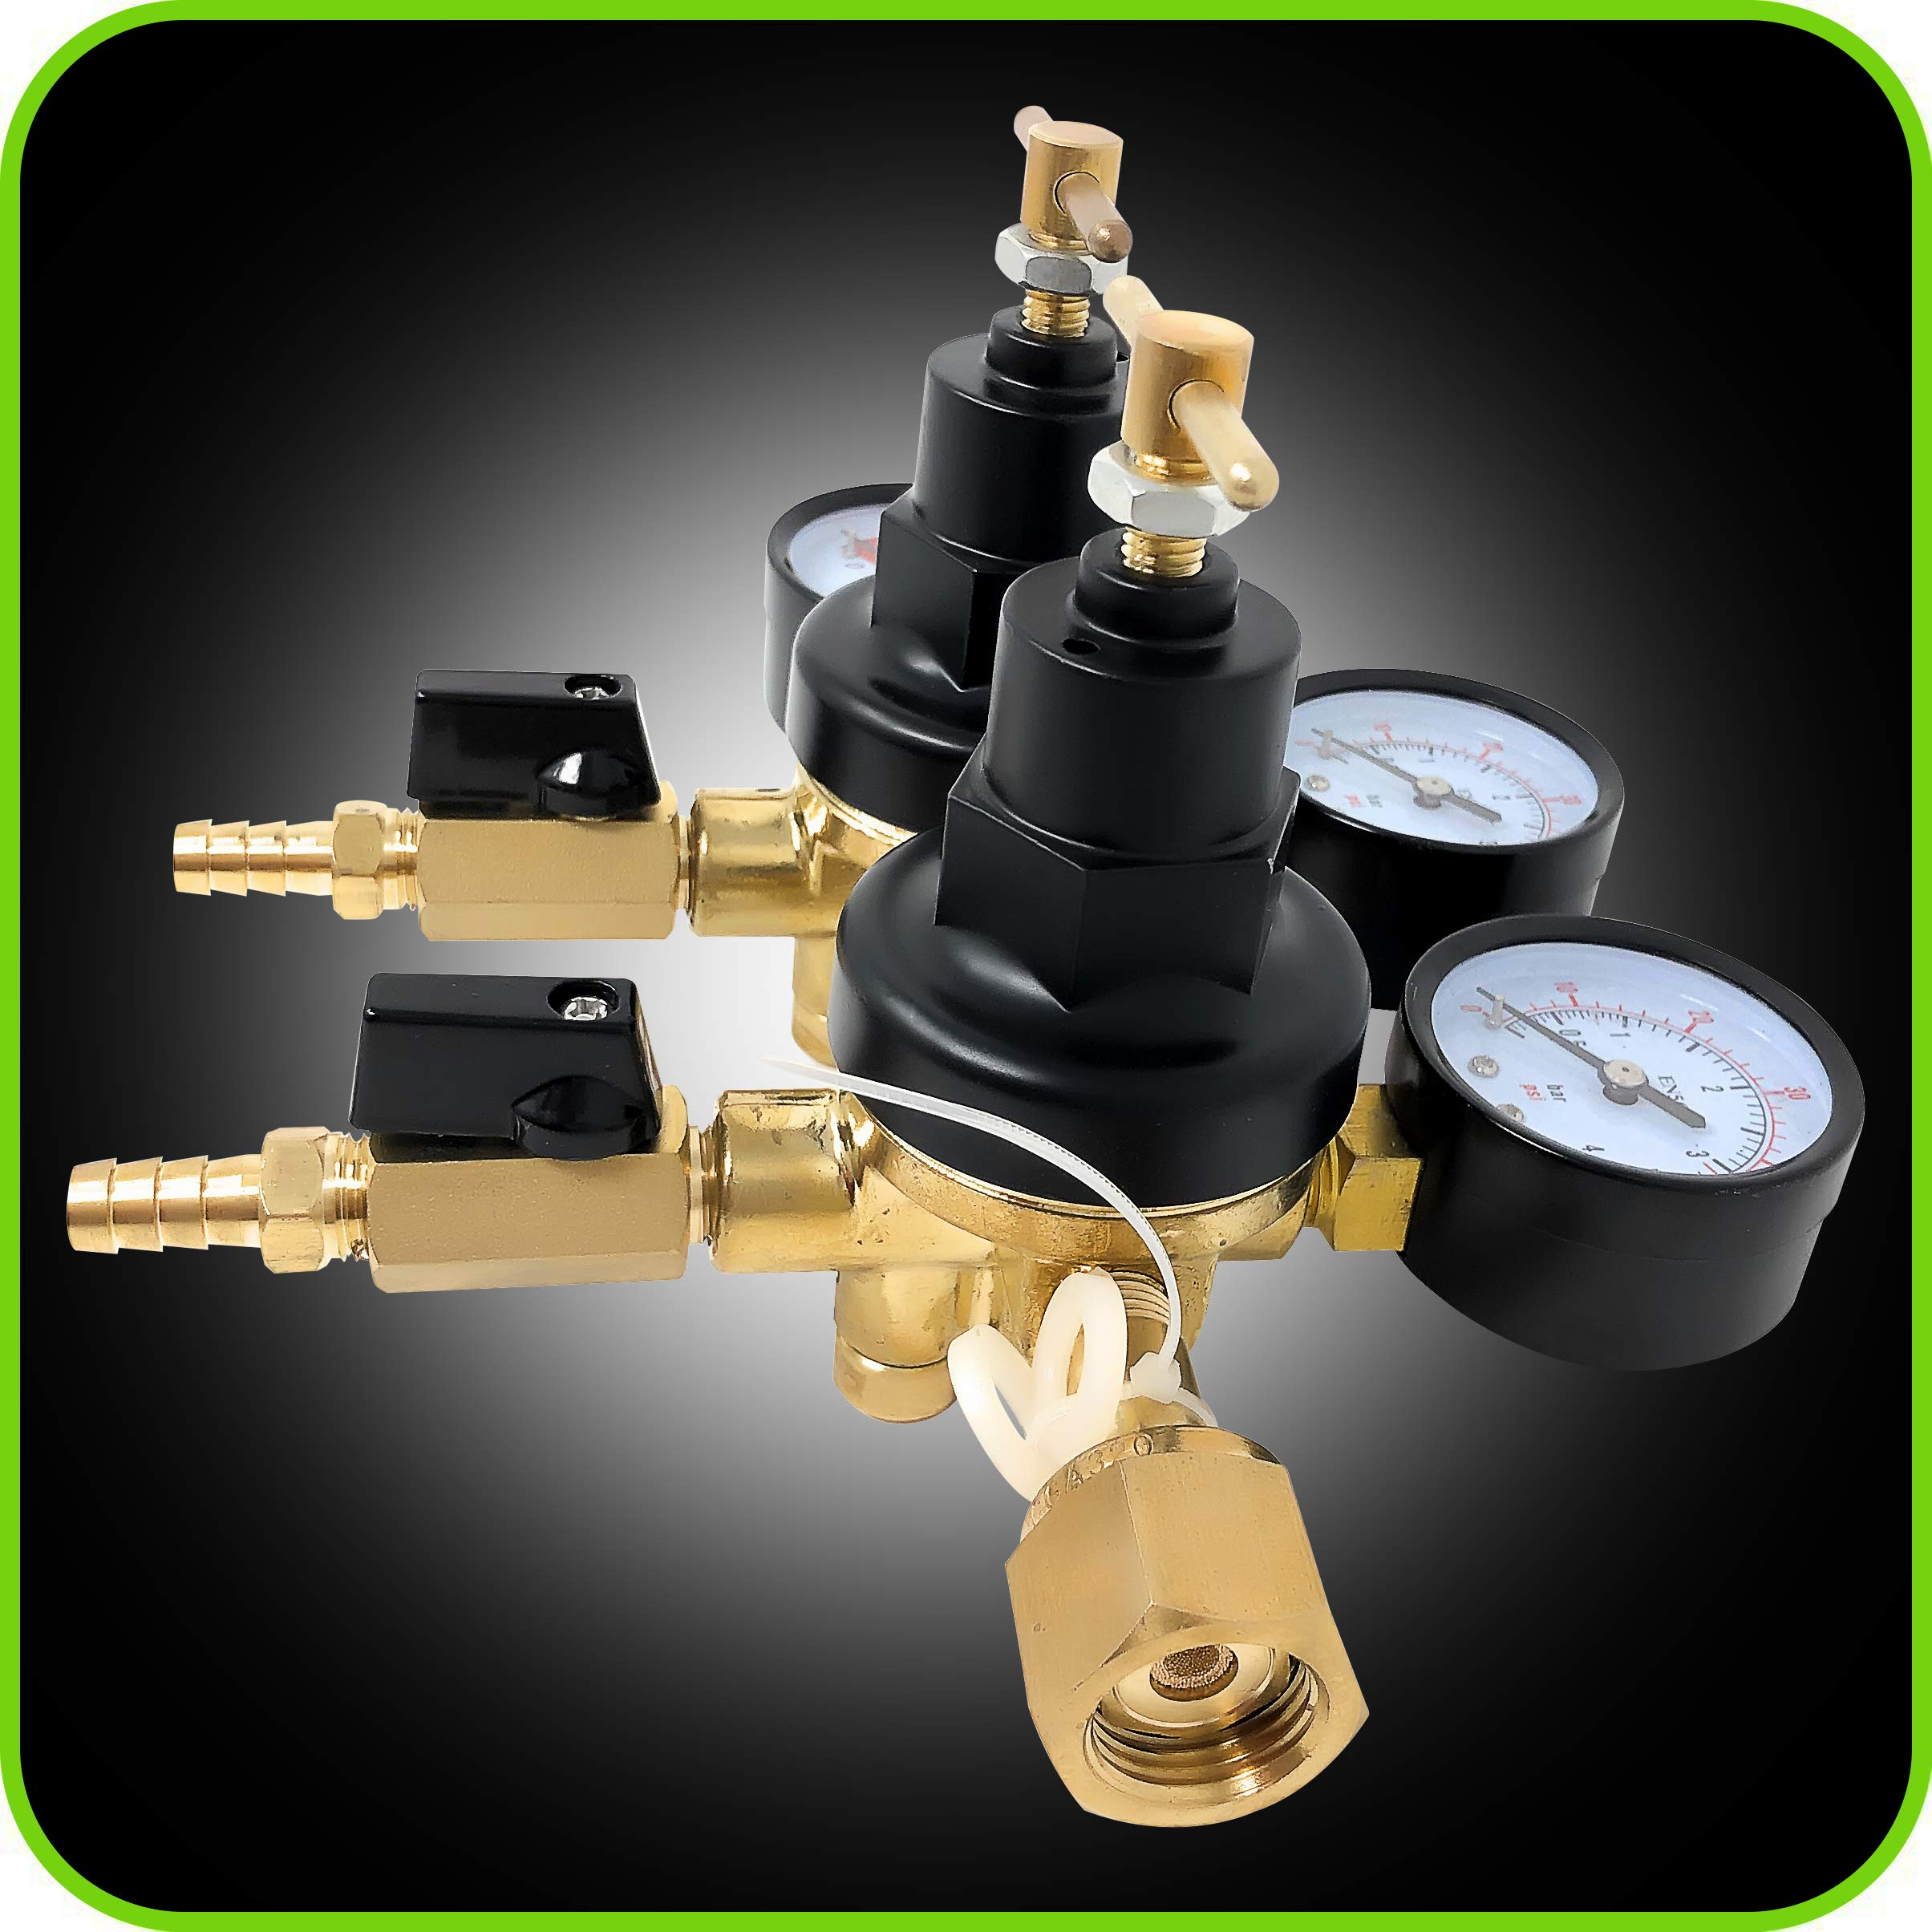 Co2 Beer Regulator Two Product Dual Pressure Kegerator Heavy Duty Features T-Style Adjusting Handle - 0 to 60 PSI-0 to 2000 Tank Pressure CGA-320 Inlet w/ 3/8'' O.D. Safety Discharge 50-55 PSI by Manatee (Image #8)